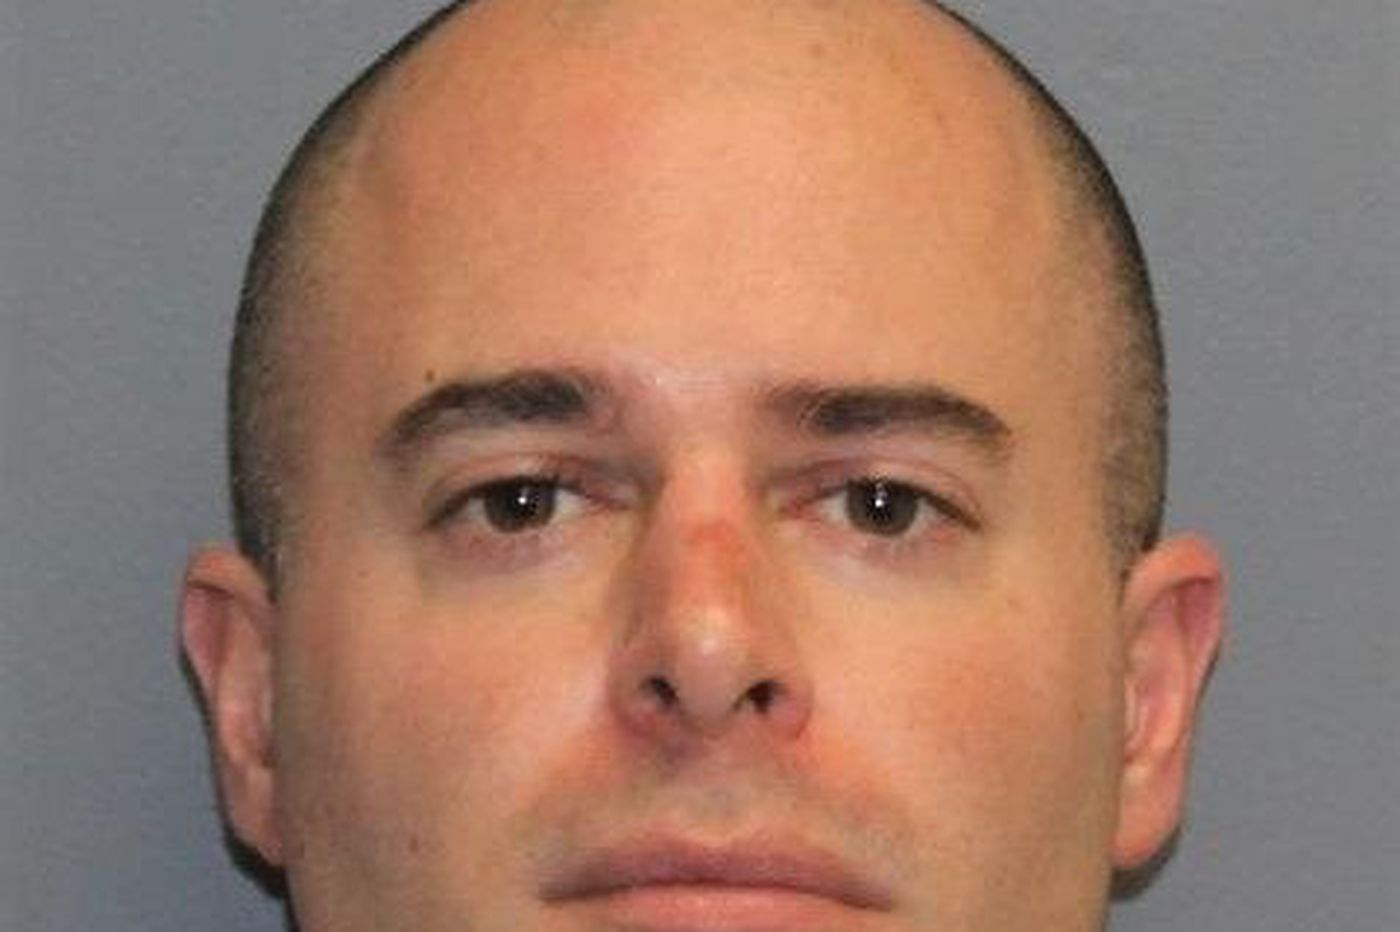 N.J. man charged with vehicular homicide in death of daughter